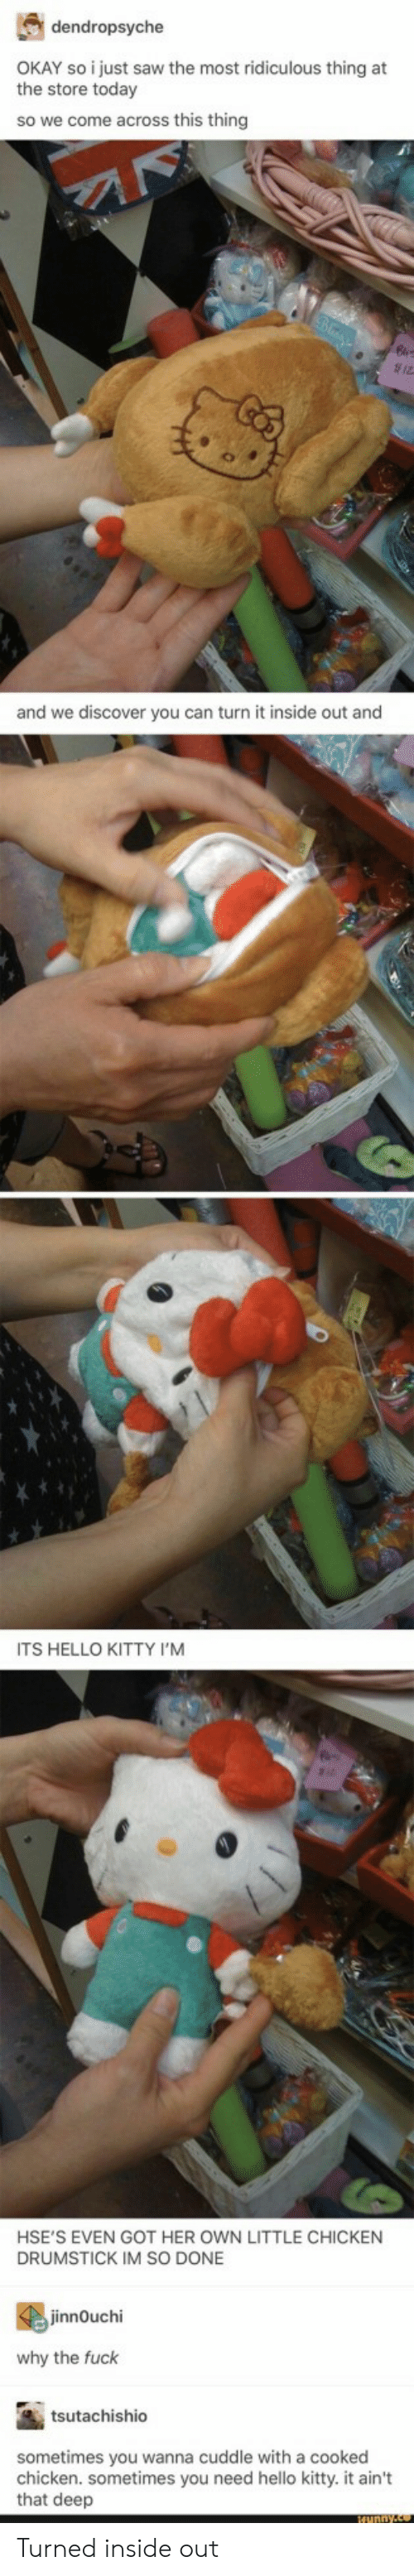 Hello Kitty: dendropsyche  the store torstysaw the most ridiculous thing at  the store today  so we come across this thing  and we discover you can turn it inside out and  ITS HELLO KITTY I'M  HSE'S EVEN GOT HER OWN LITTLE CHICKEN  DRUMSTICK IM SO DONE  innOuchi  why the fuck  tsutachishio  sometimes you wanna cuddle with a cooked  chicken. sometimes you need hello kitty. it ain't  that deep Turned inside out